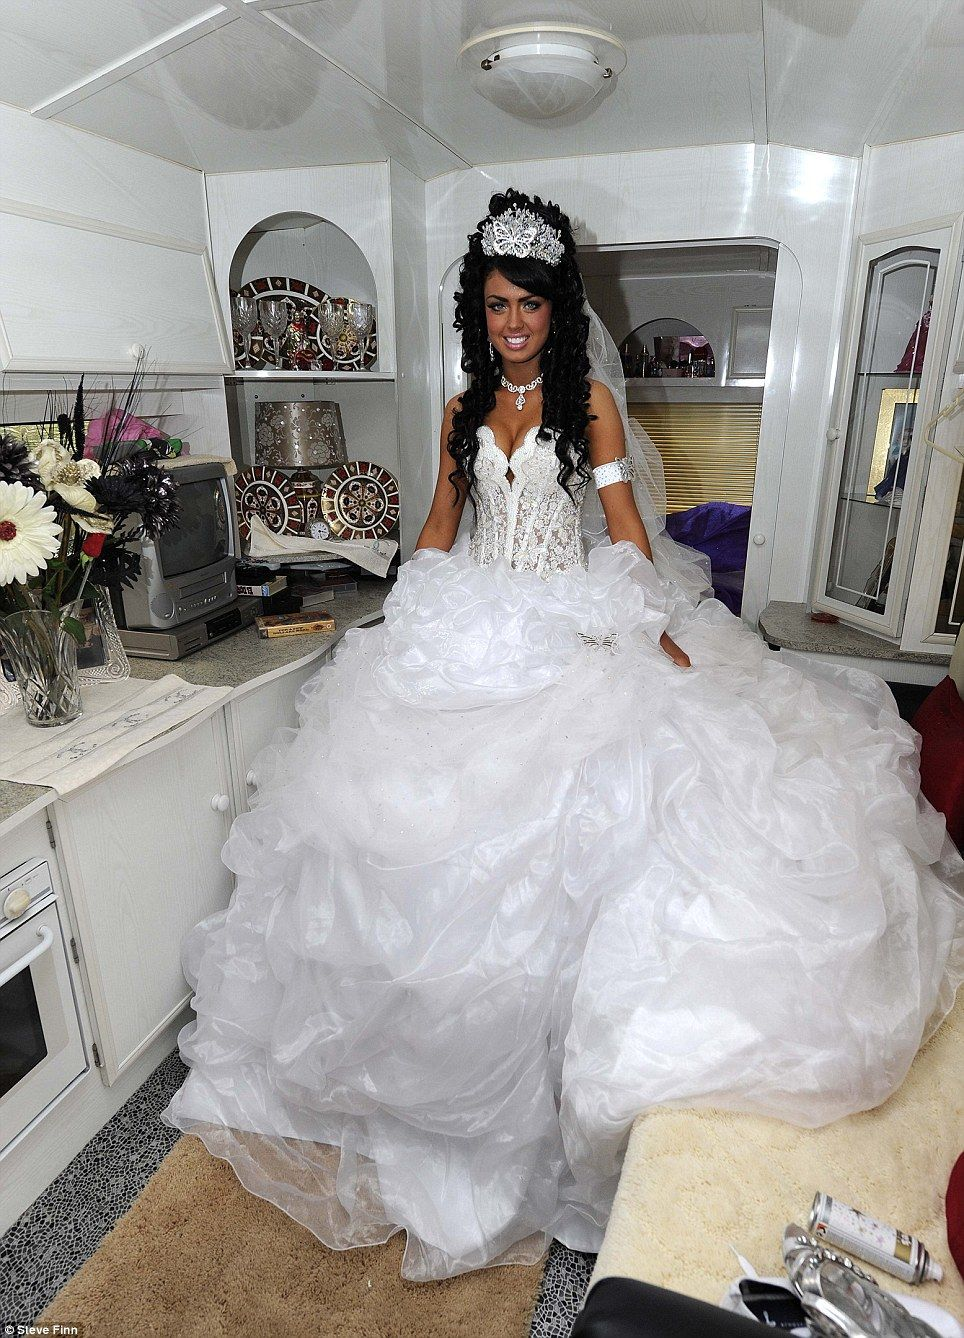 How much does gypsy wedding dress cost